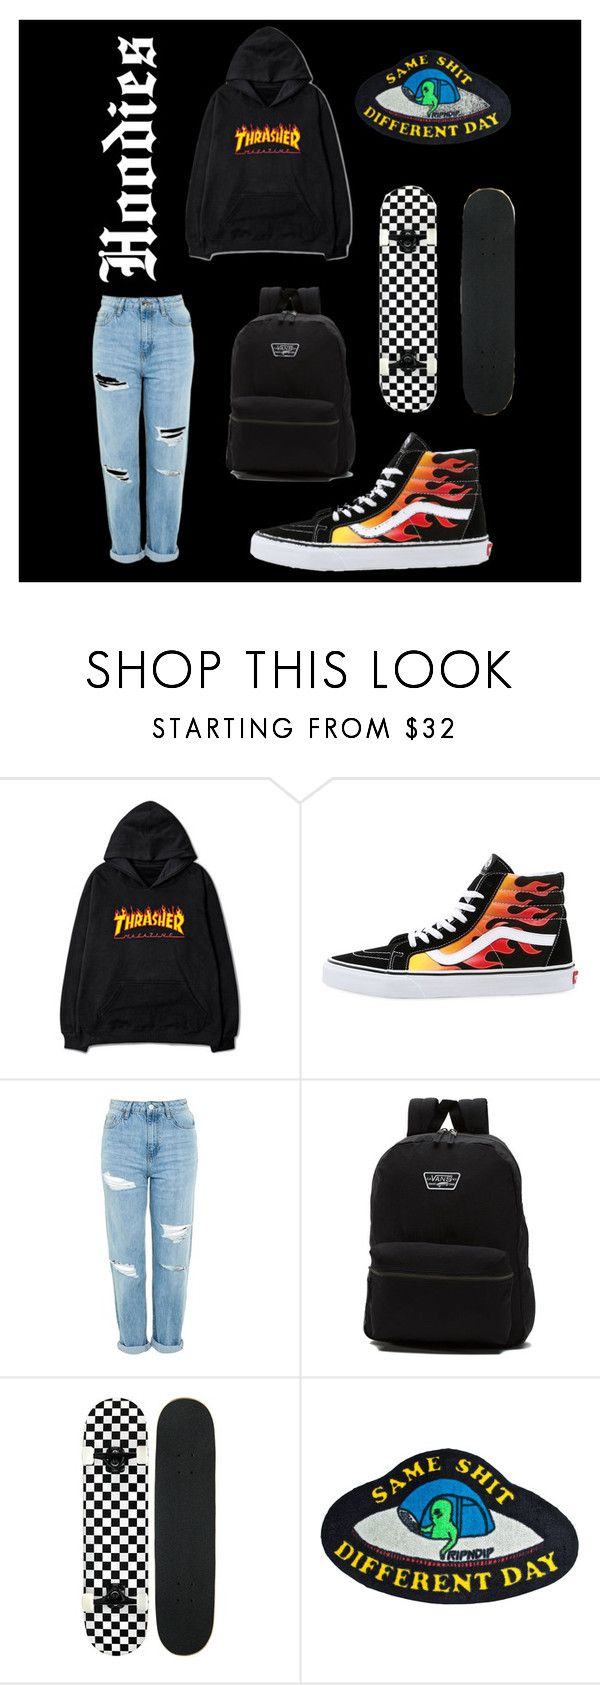 """Même merde tous les jours"" by hunneyboo ❤ liked on Polyvore featuring Vans, Topshop, RIPNDIP and Hoodies"